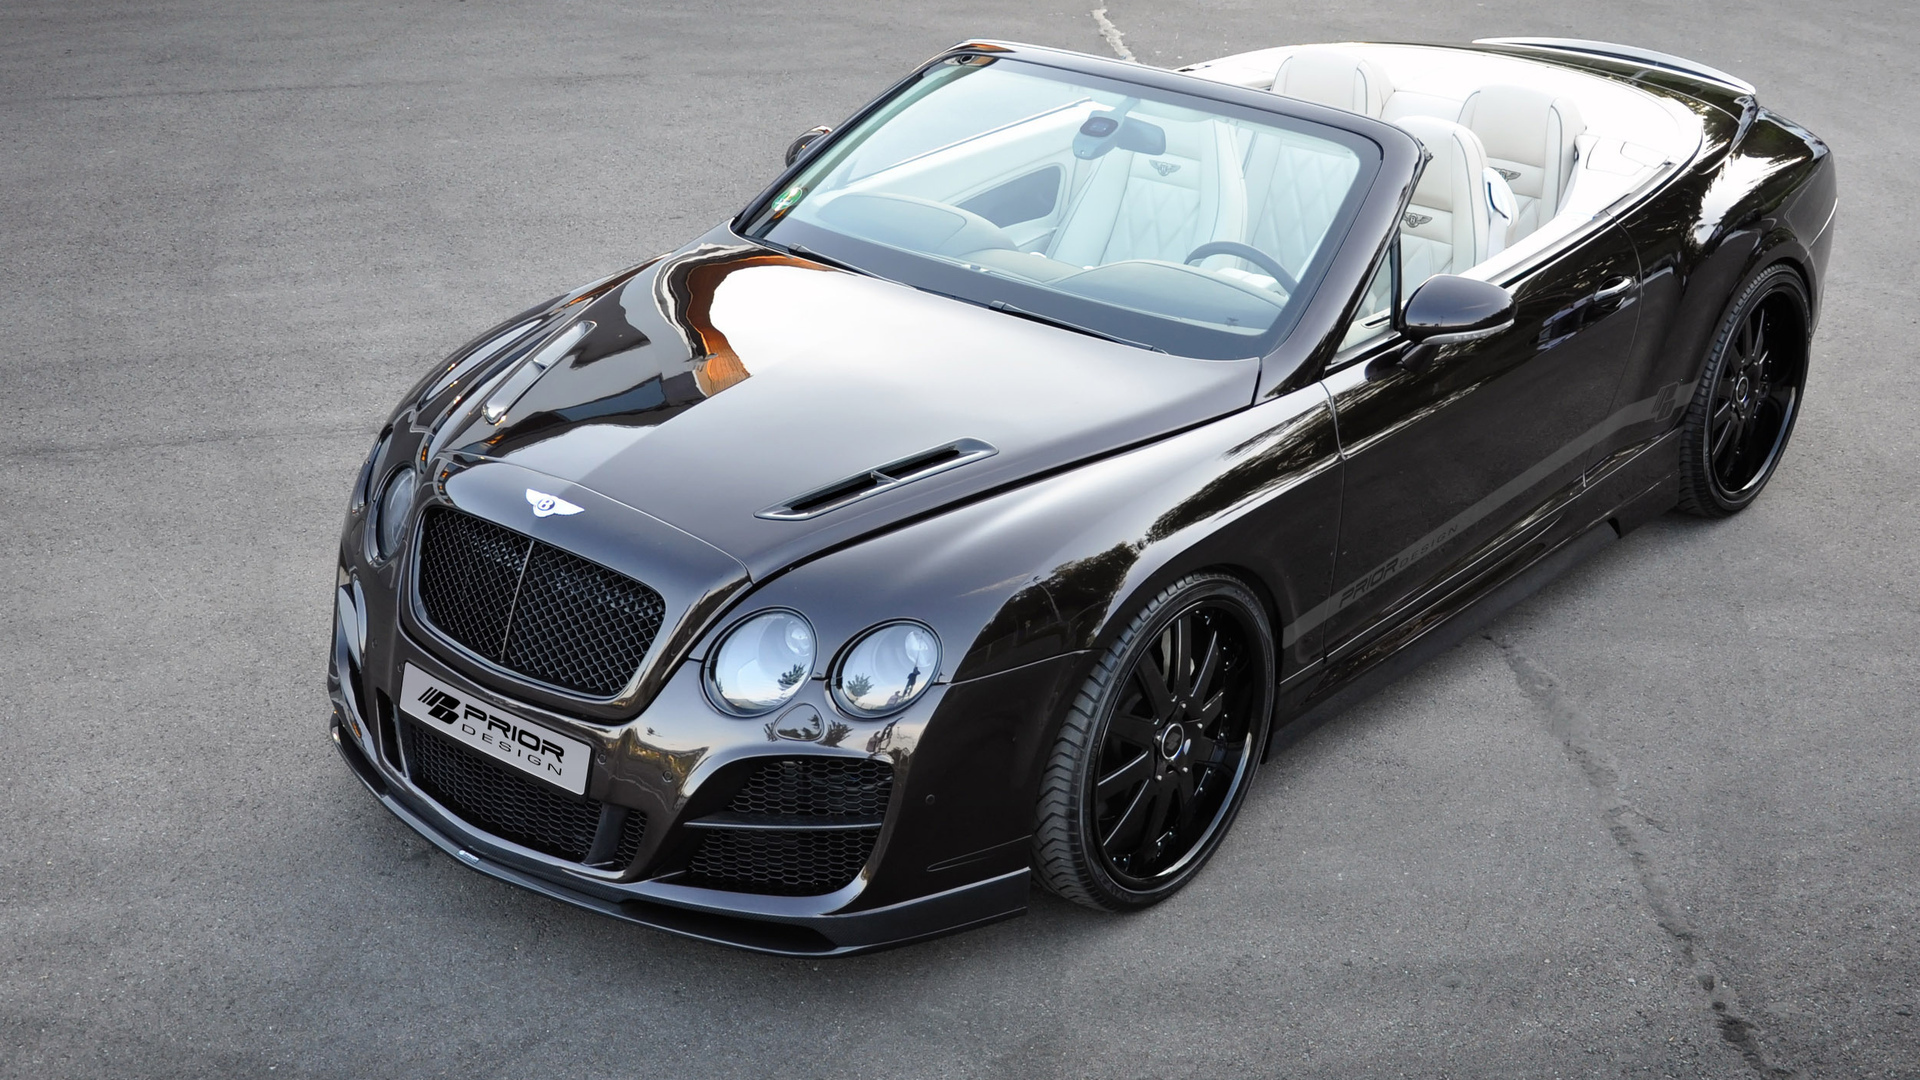 Cars Wallpapers: Convertibles Cars Wallpapers Images Photos Pictures